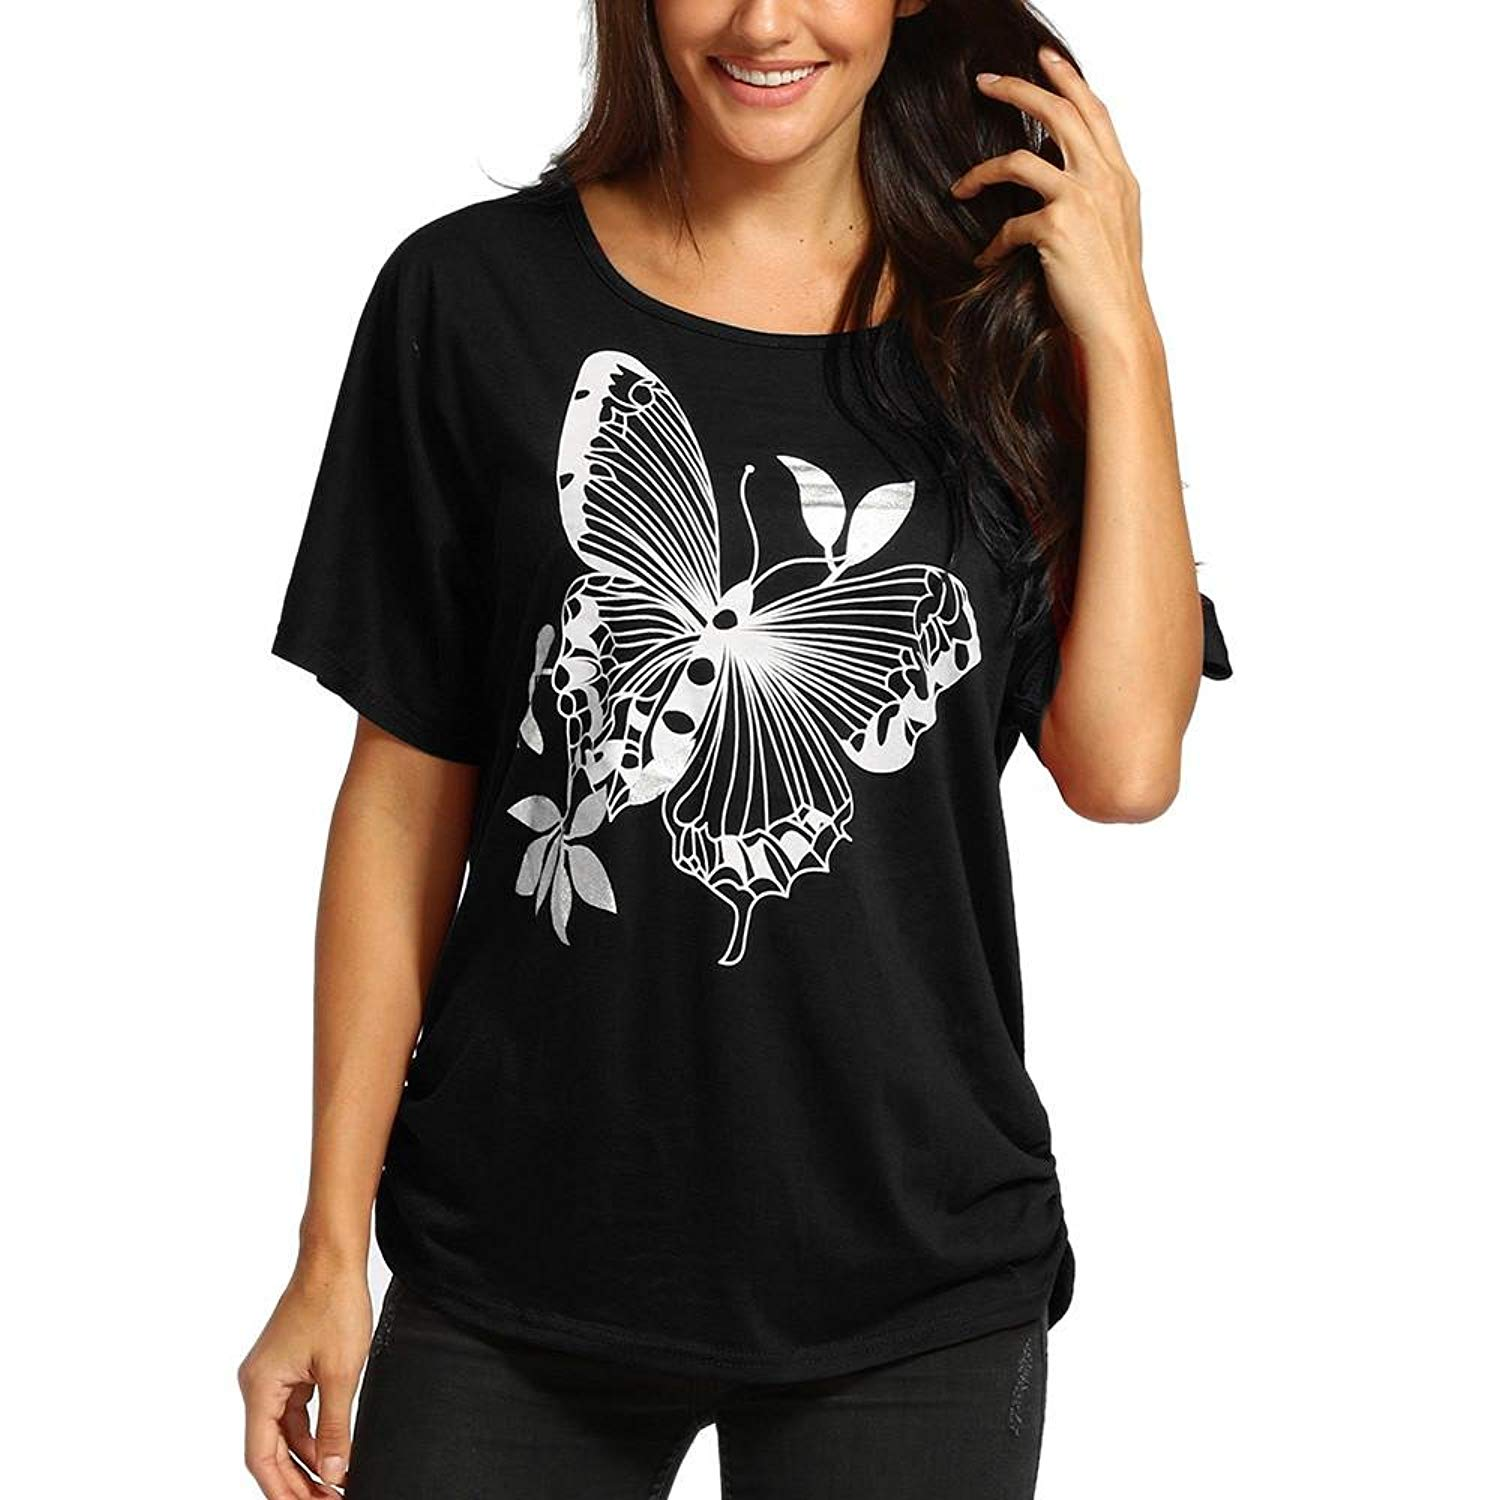 6662a0adc89 Get Quotations · MALLOOM Womens Oversized Batwing Baggy Butterfly Print  Short Sleeve Loose Fit Top Shirt